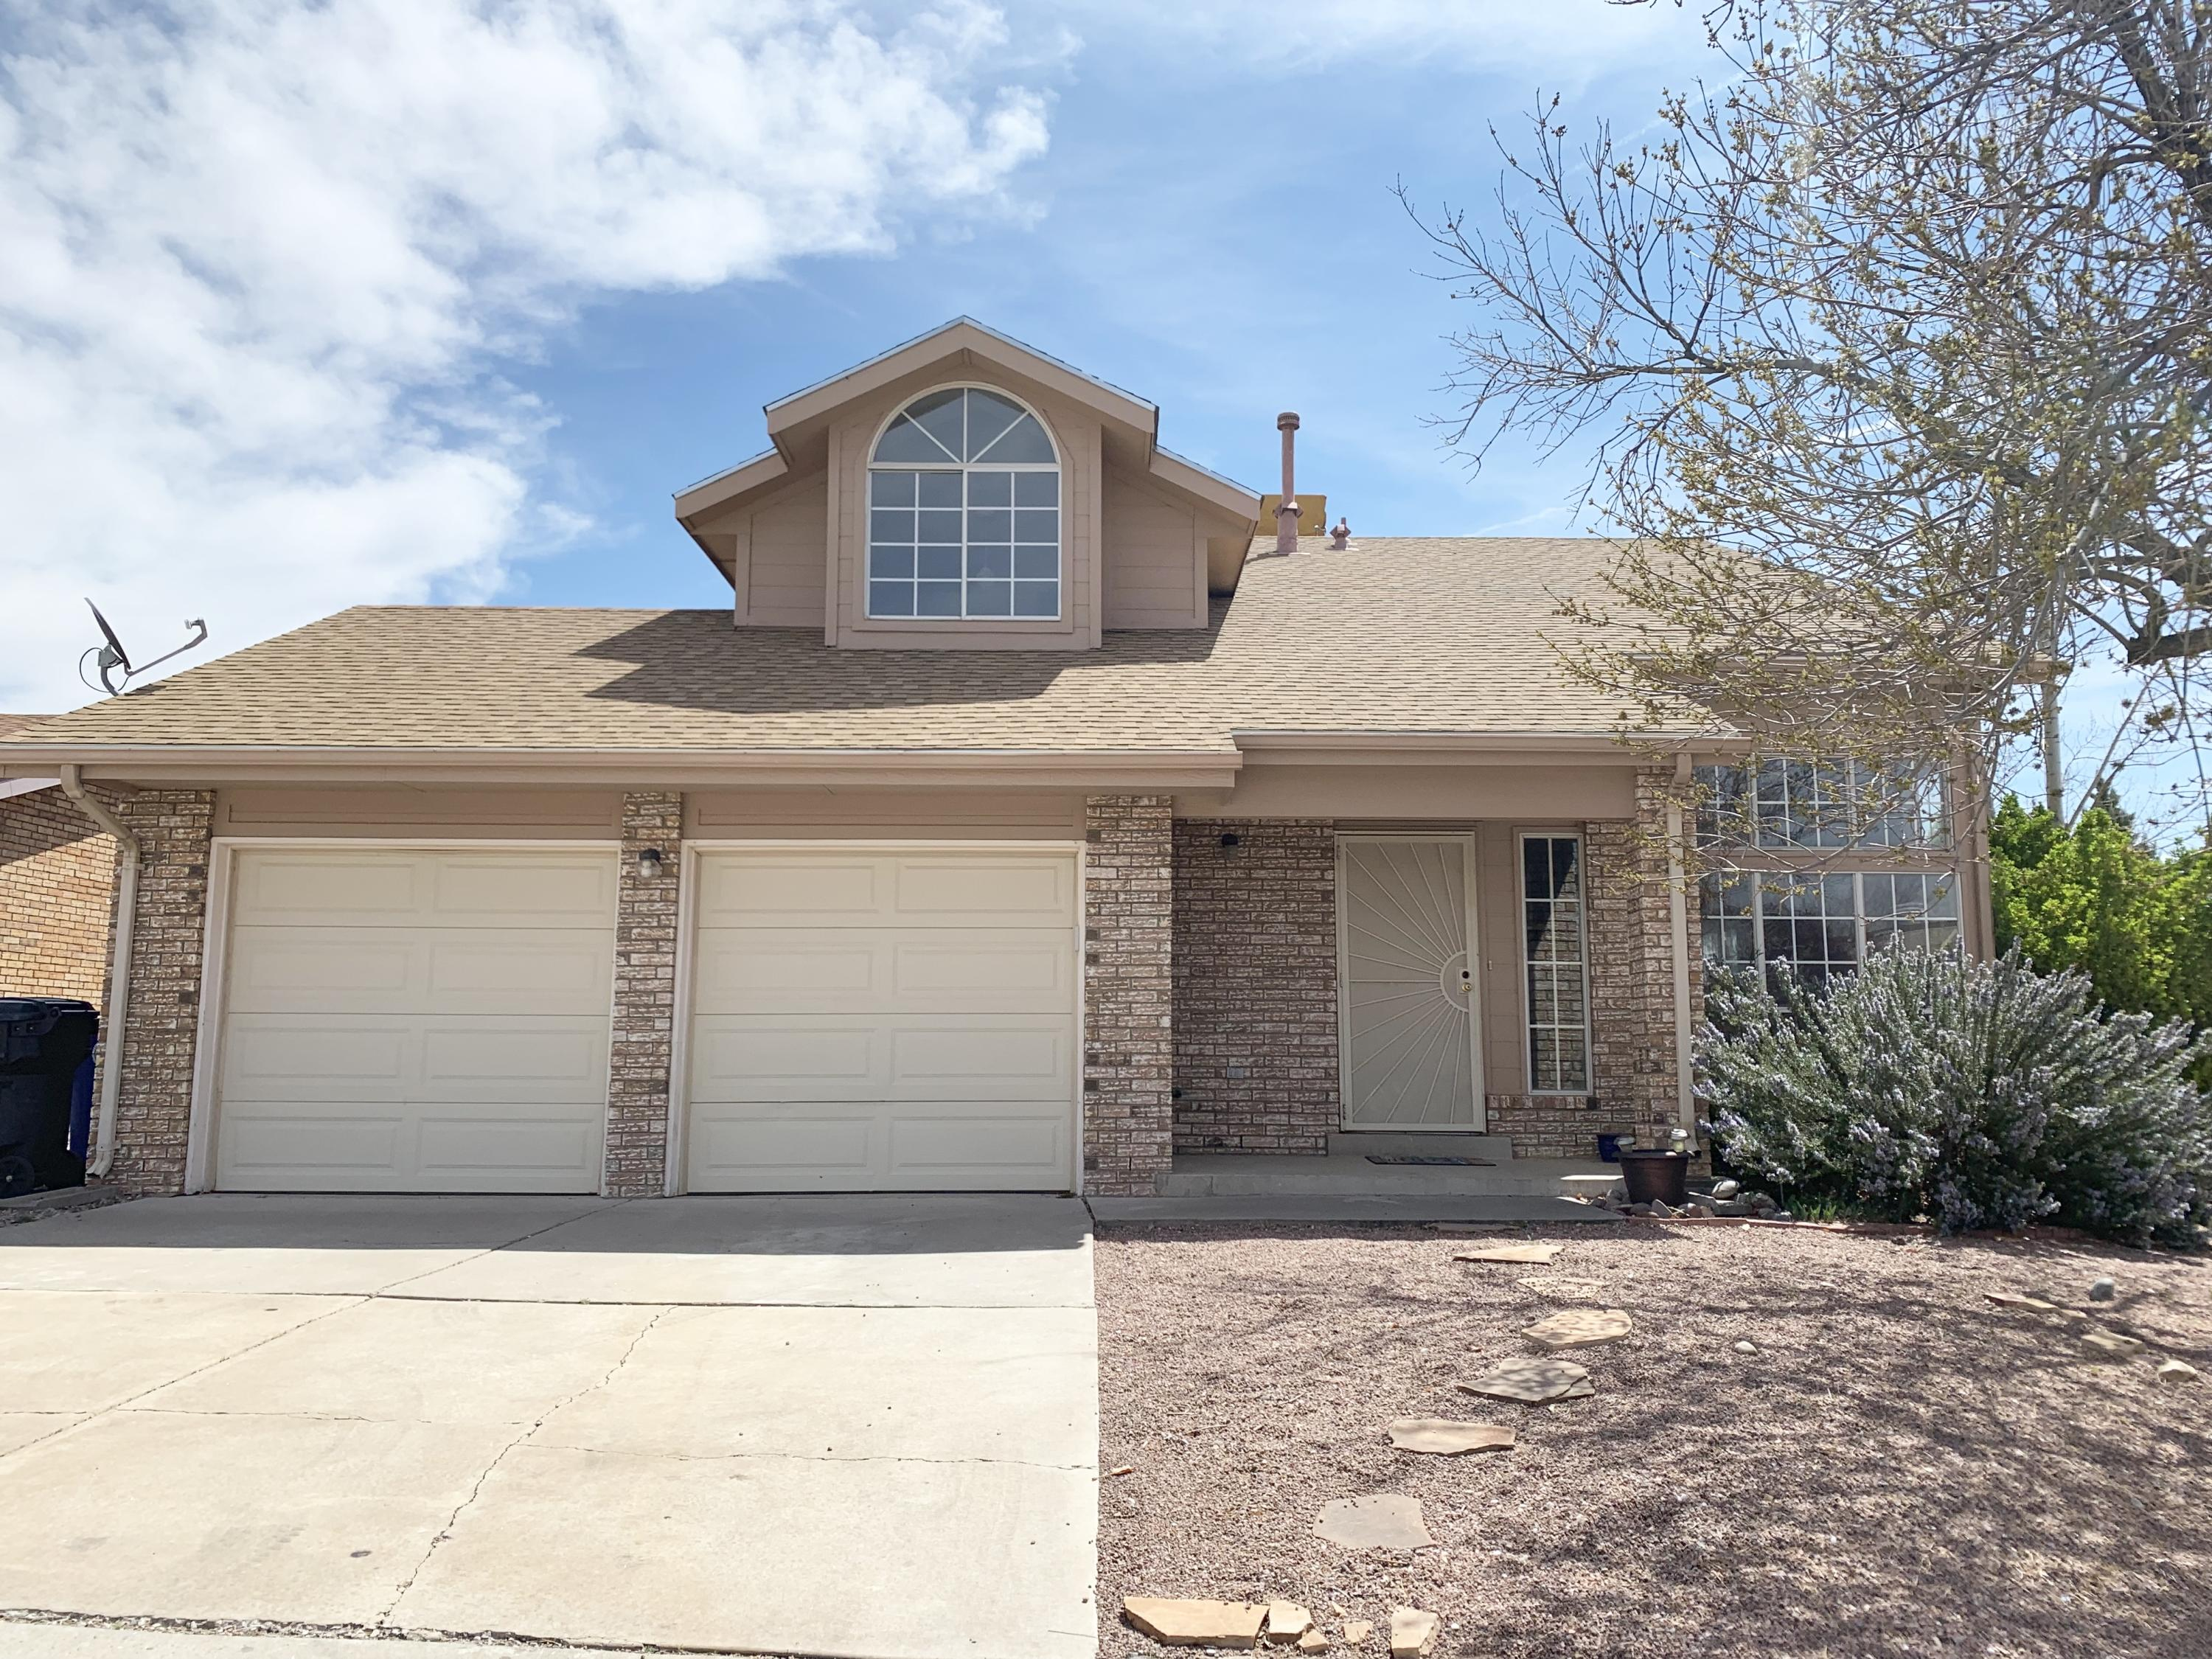 7112 NW Portulaca Drive, Northwest Albuquerque and Northwest Heights, New Mexico